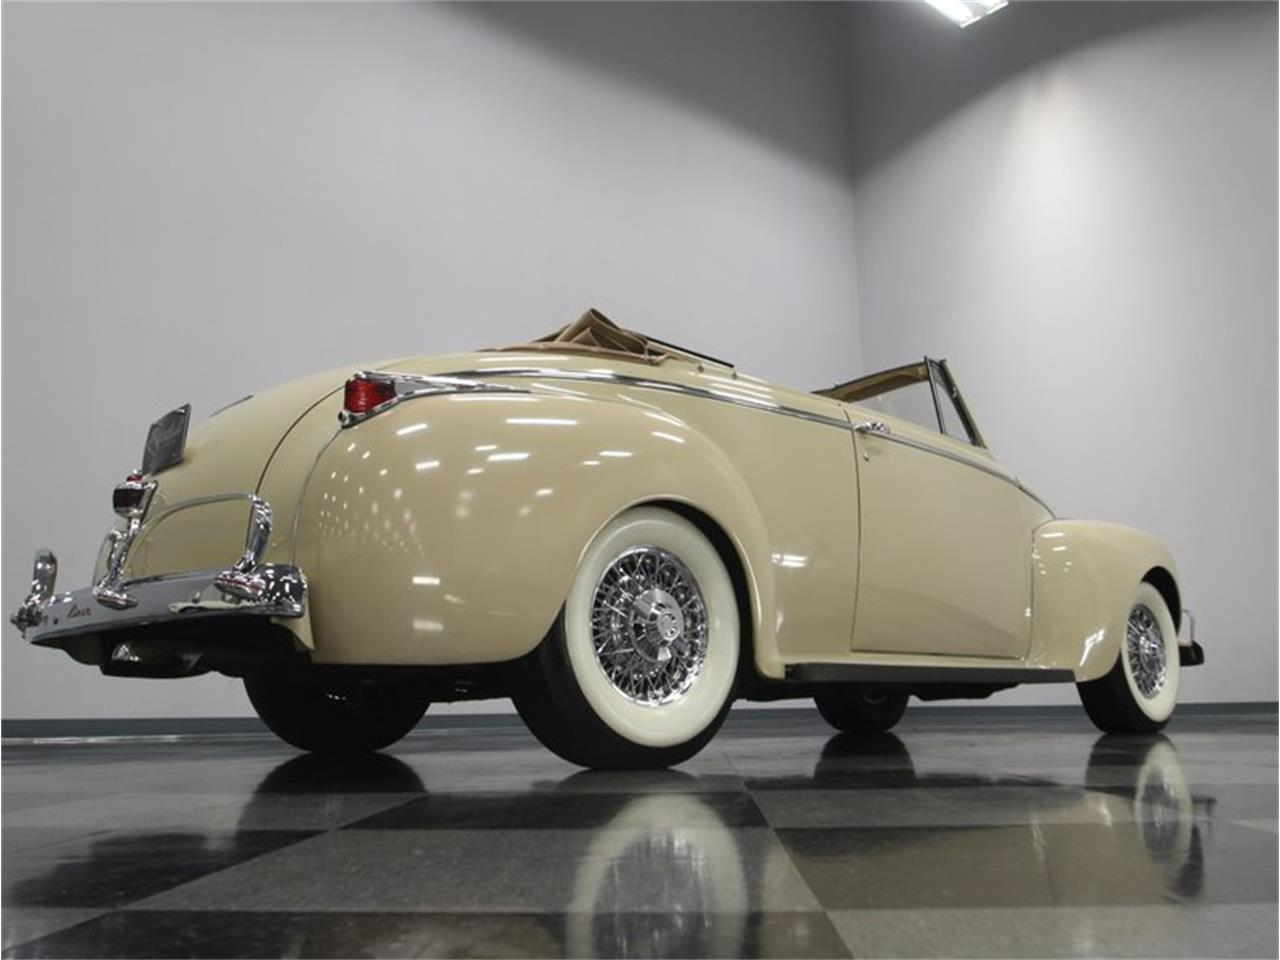 Large Picture of '41 Dodge Luxury Liner located in Tennessee - $49,995.00 Offered by Streetside Classics - Nashville - LKP6